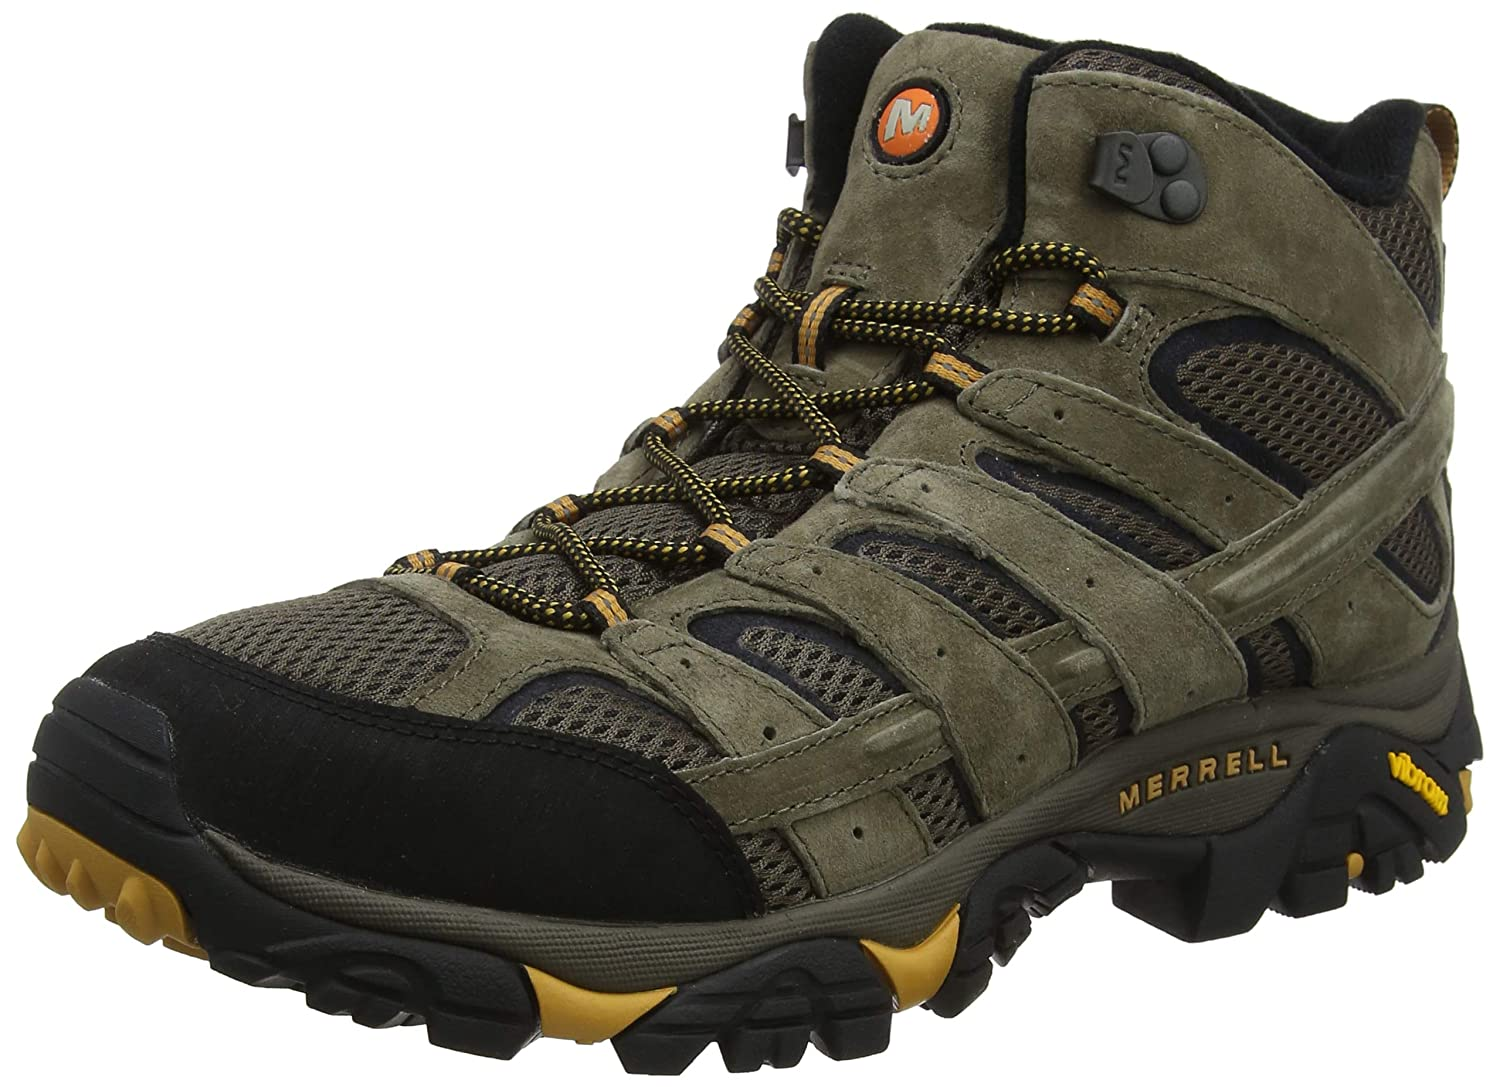 69c25c9d9e Merrell Men's Moab 2 Vent Mid Hiking Boot